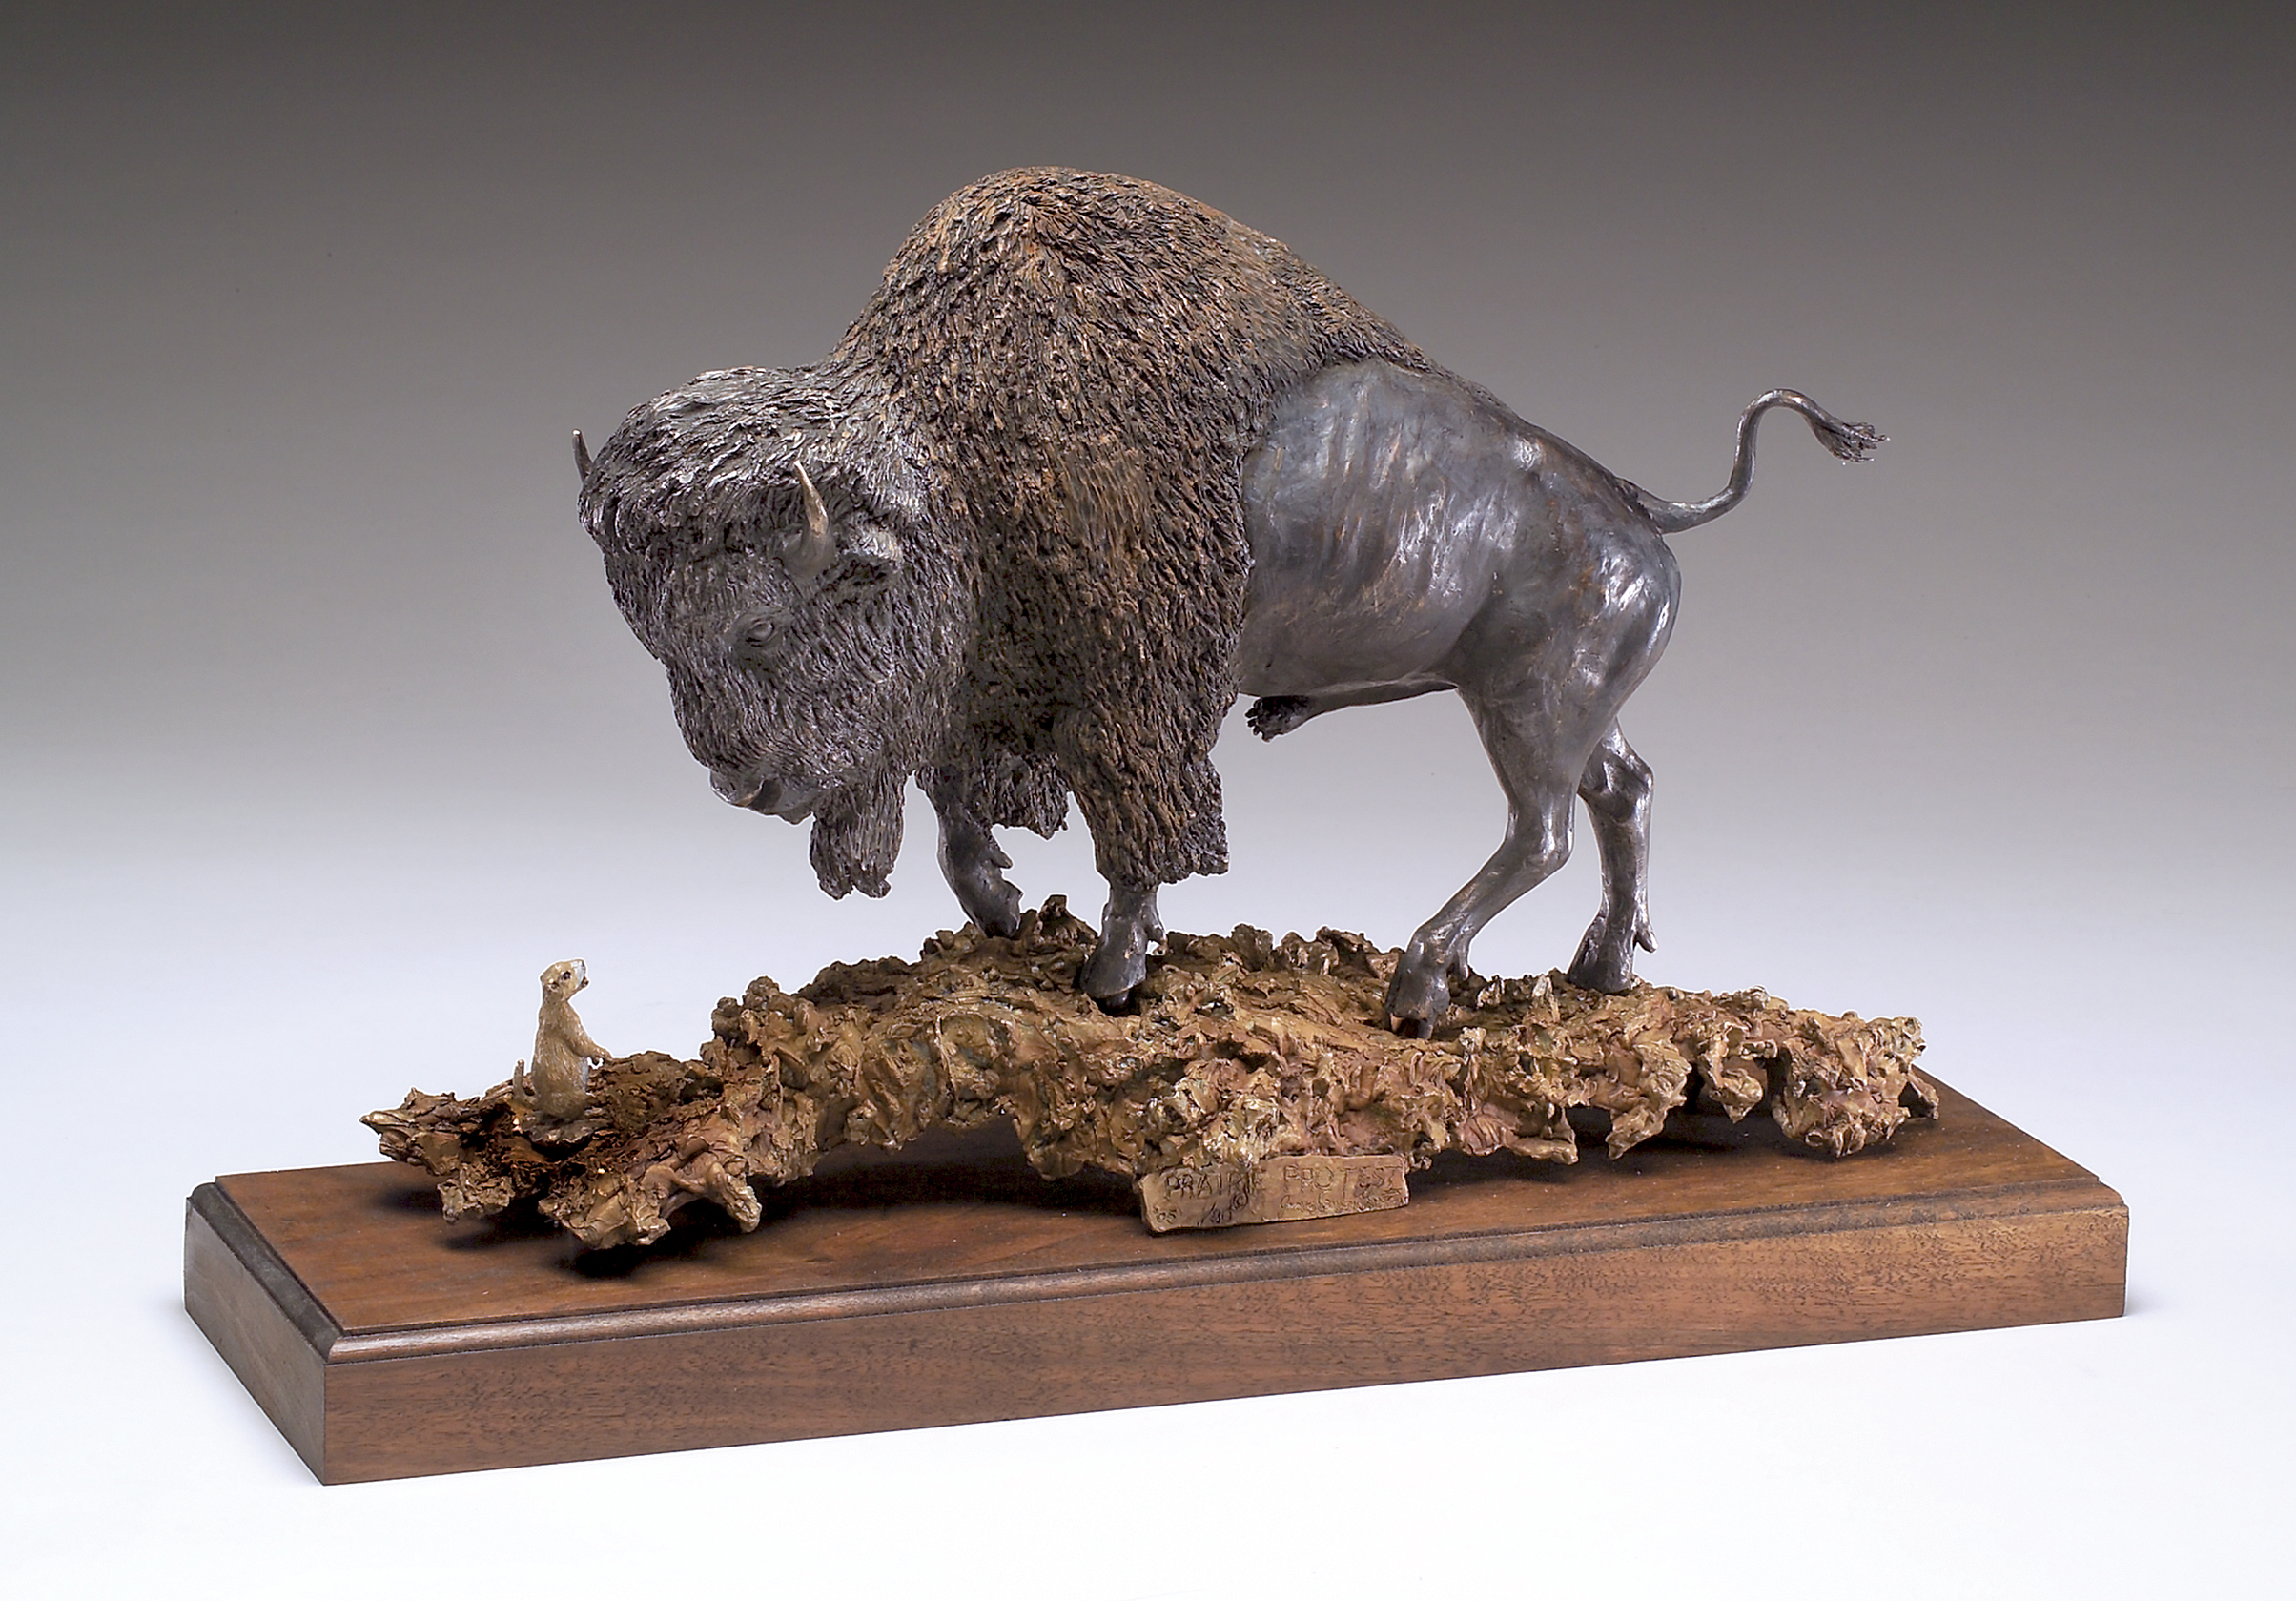 """Prairie Protest"" by James Carlson Gartin 20"" x 6"" x 15""H - 30lbs - L/E -30 - Bronze Buffalo confronted by a Prairie Dog"